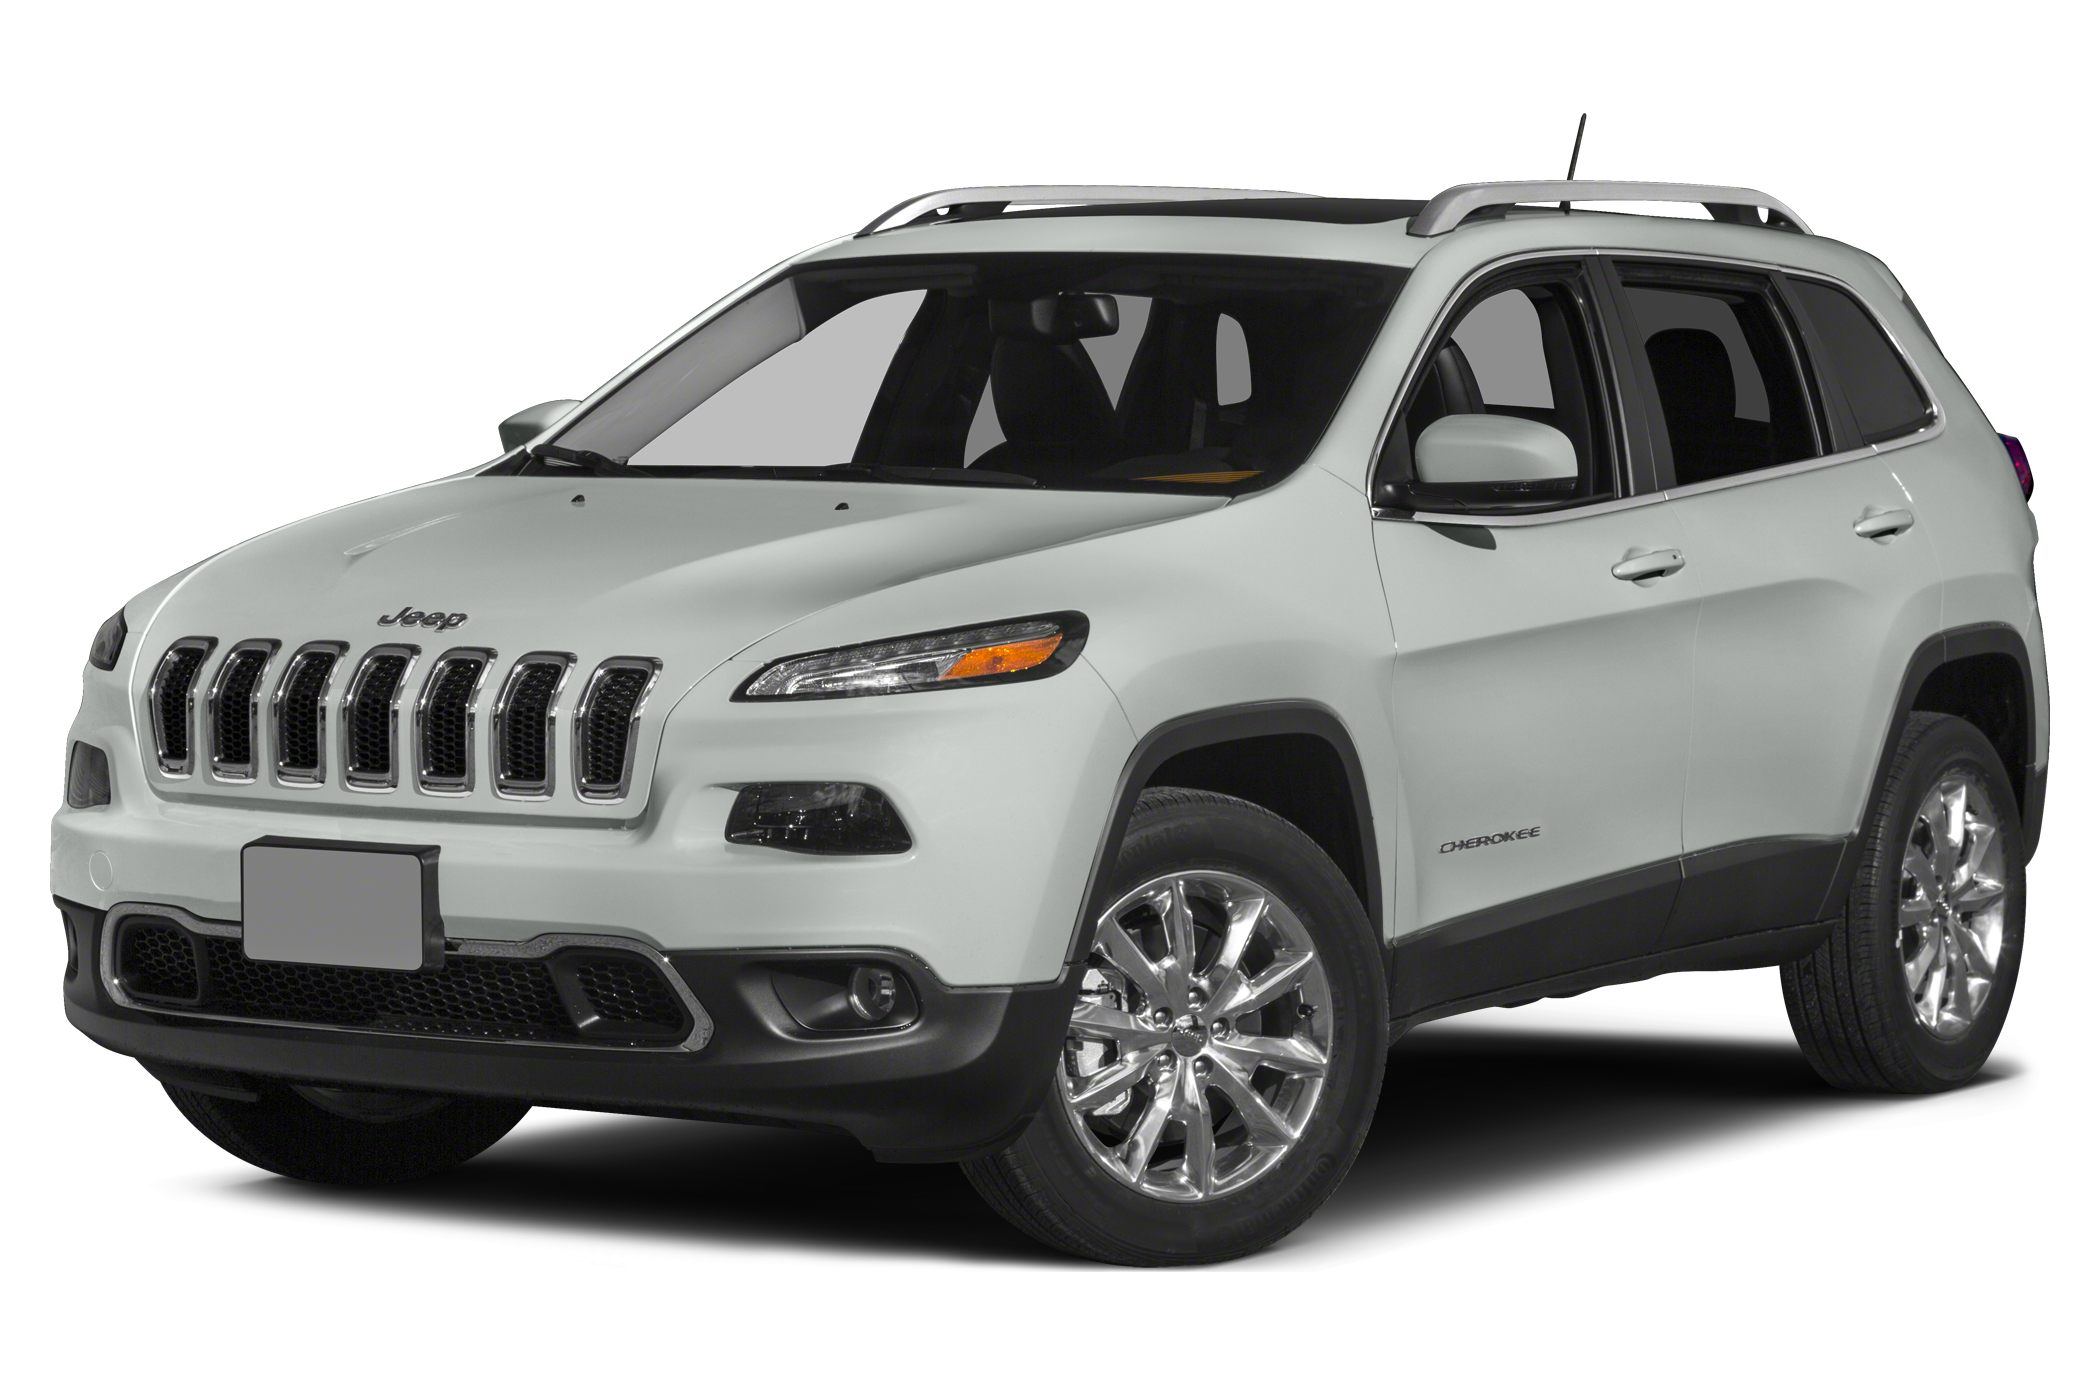 2015 Jeep Cherokee Limited SUV for sale in Redford for $35,625 with 2 miles